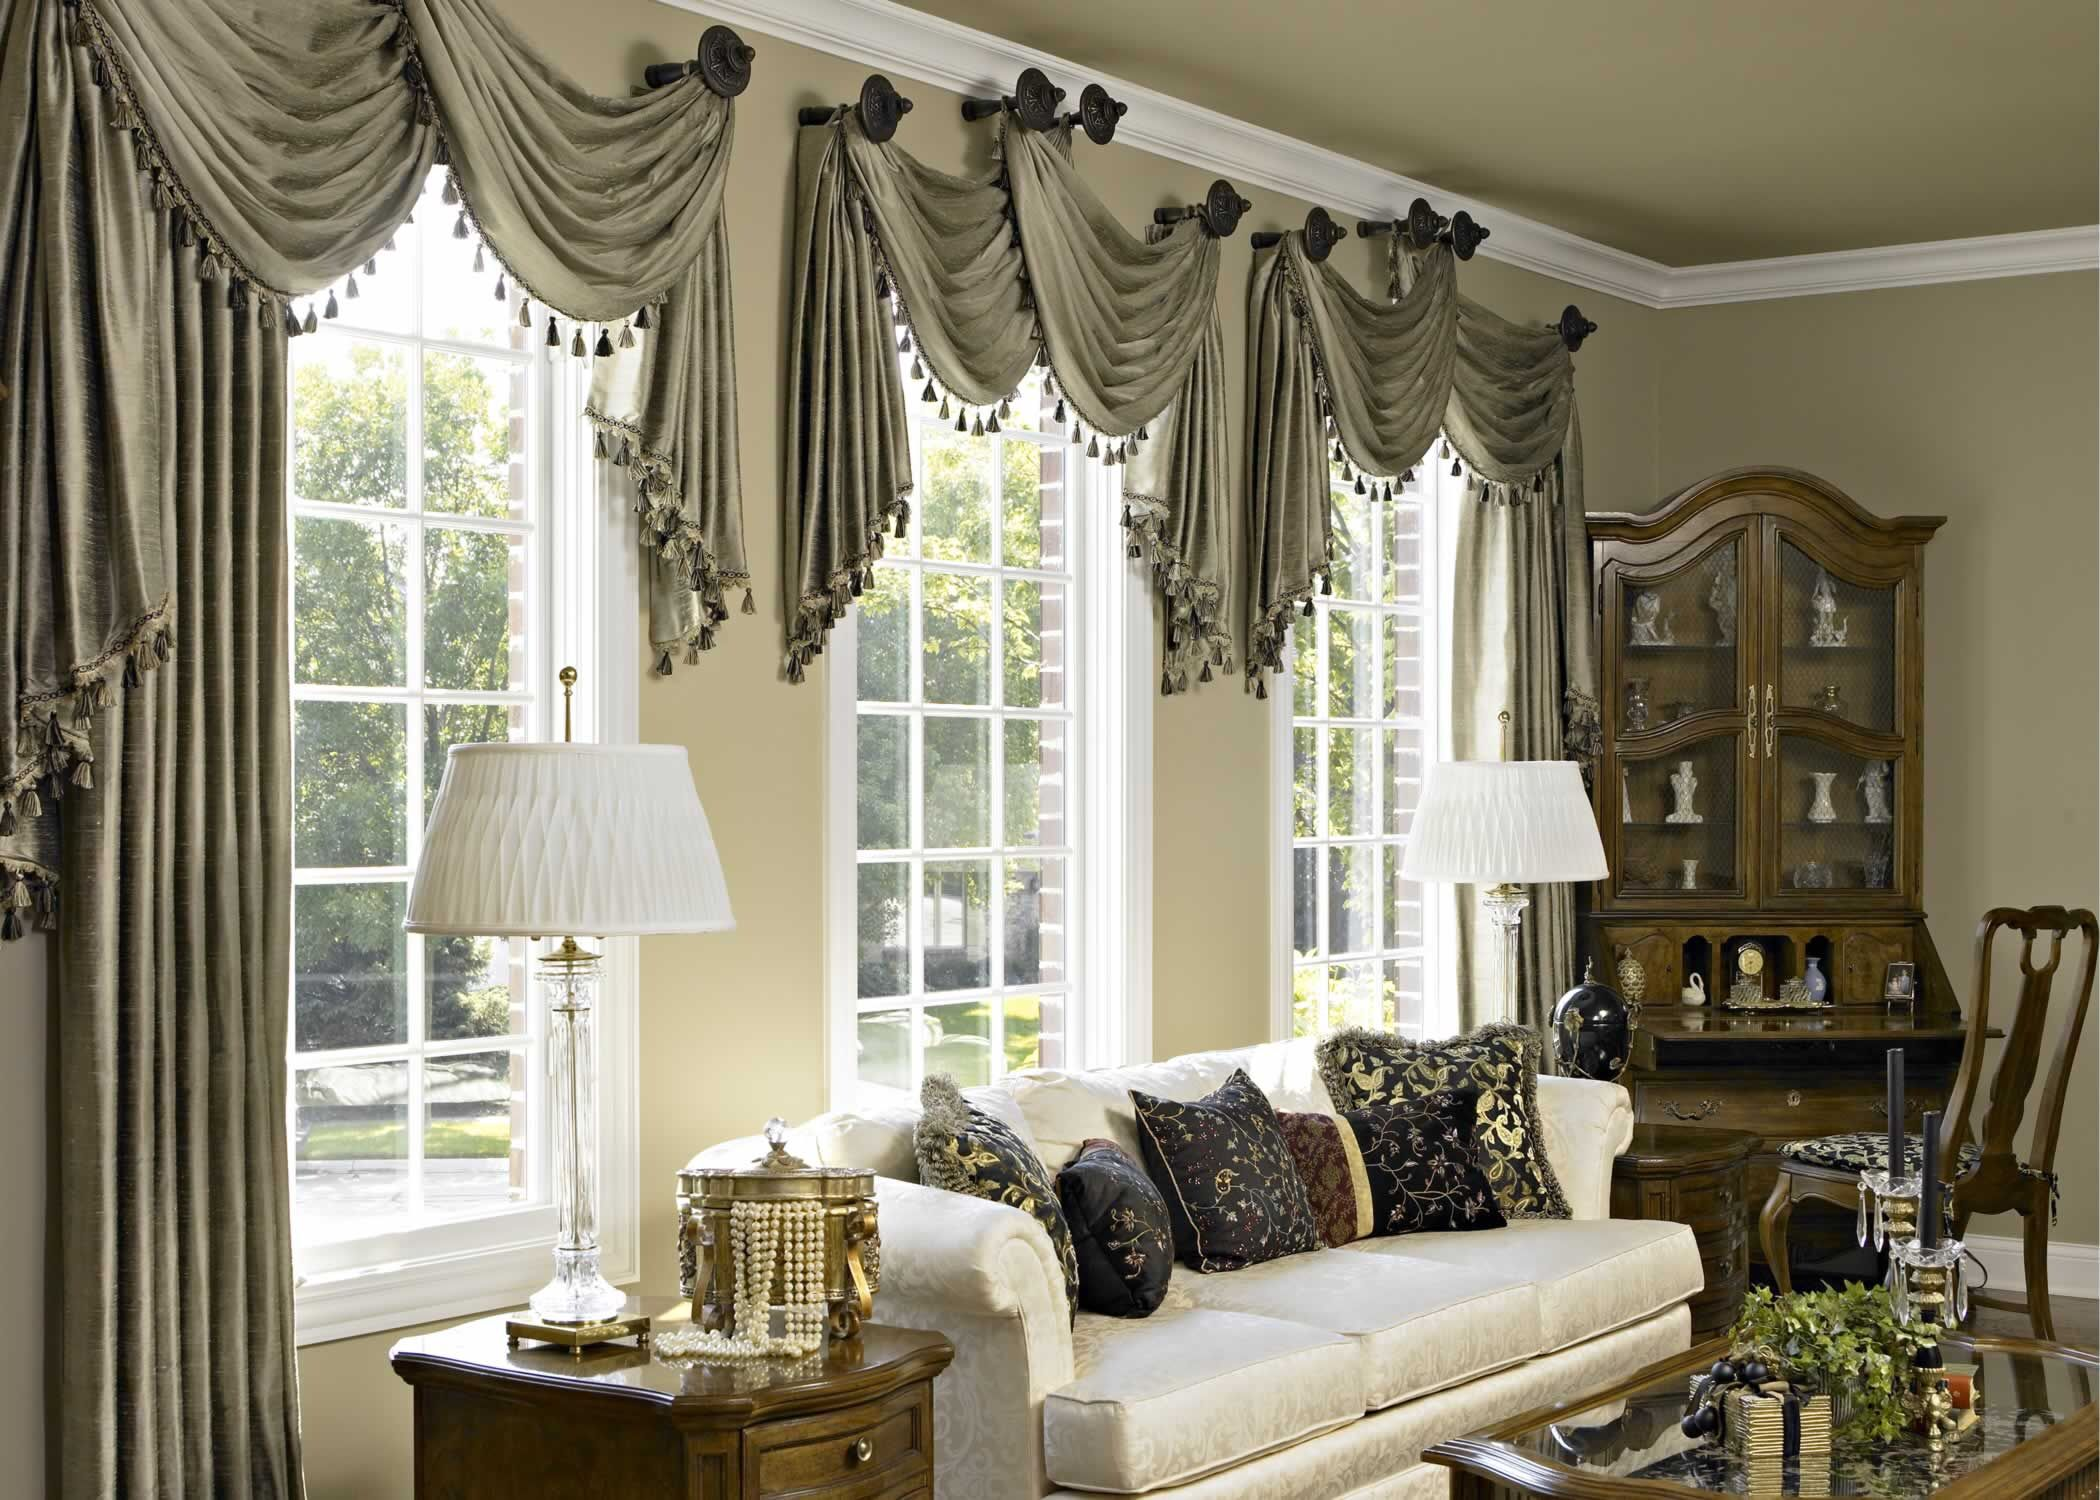 Image From Httpwwwinteriorbytewpcontentuploads201501 Extraordinary Bay Window Living Room Design Inspiration Design